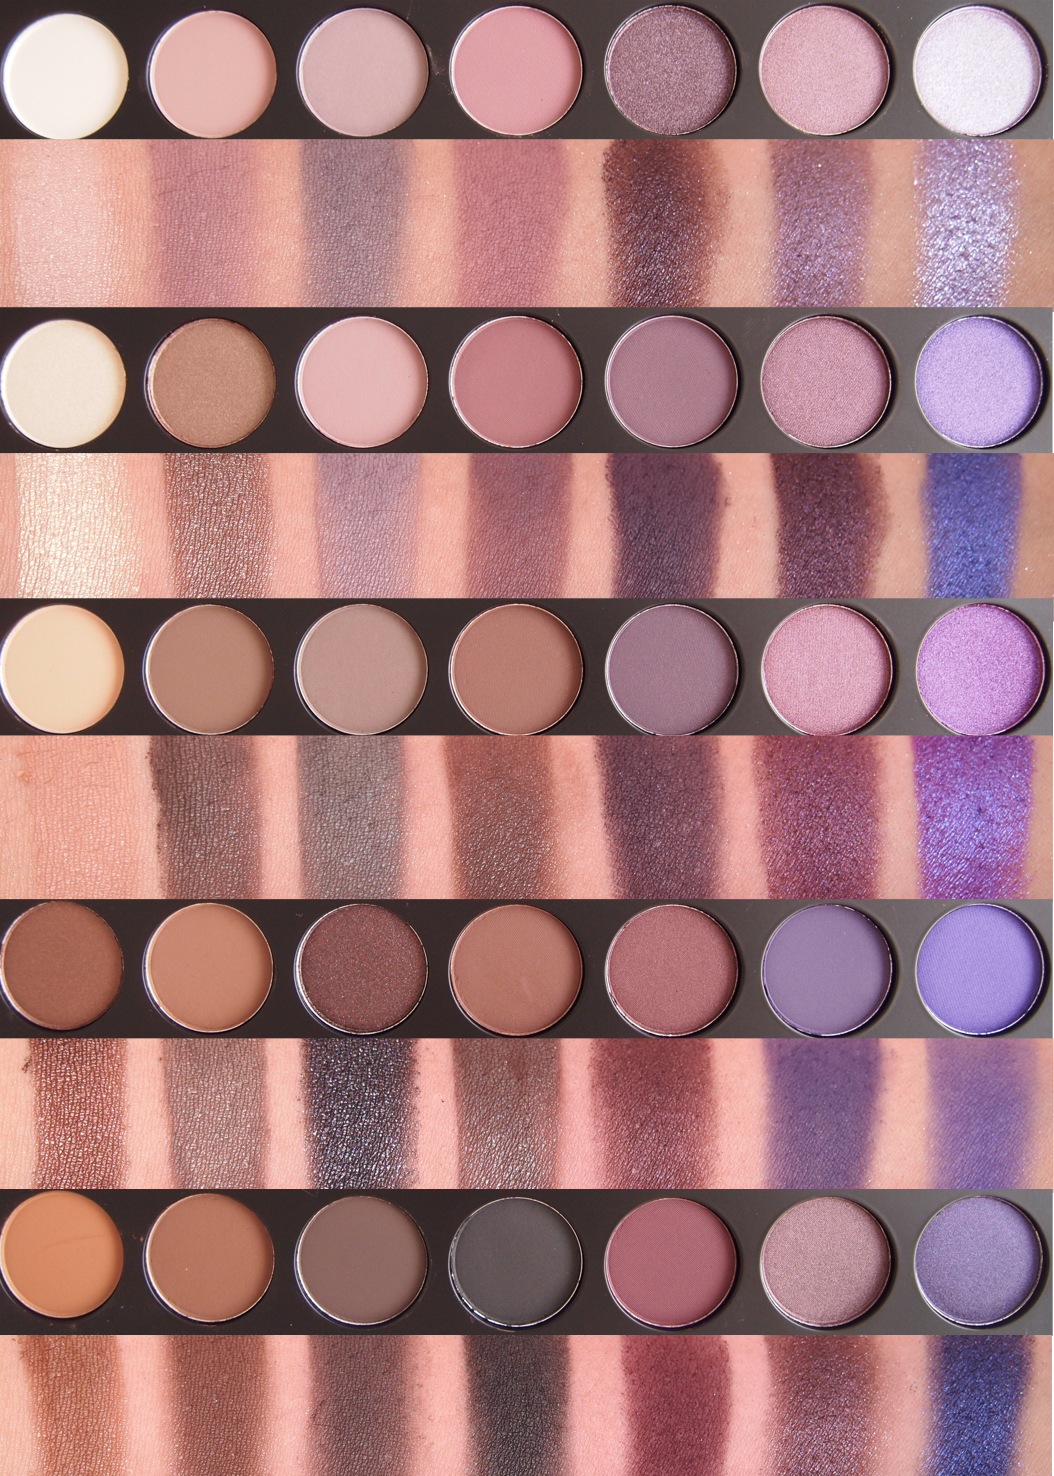 Morphe 35k eyeshadow palette review beauty in bold - Morphe Brushes 35e Palette And 35p Palette Swatch Review Eyeshadow